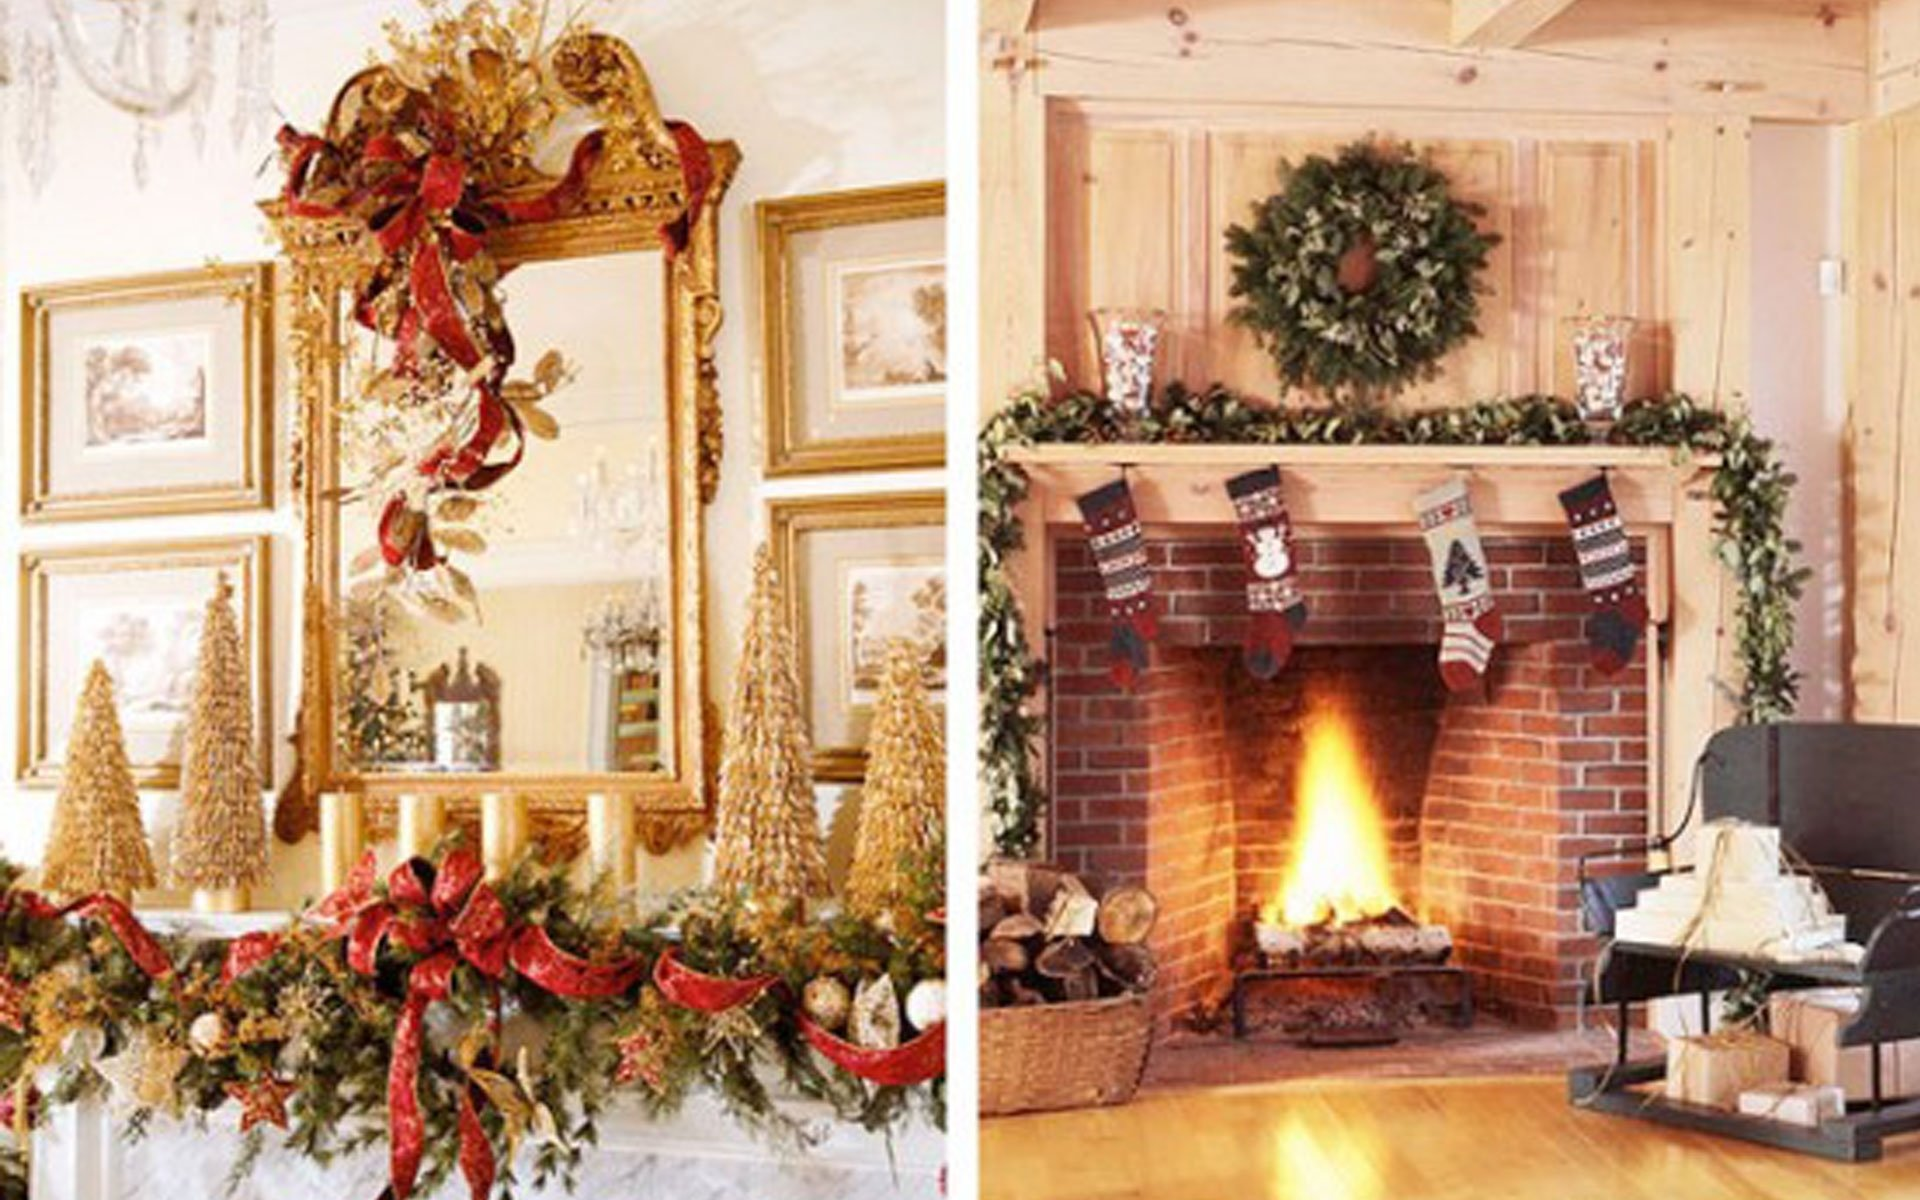 10 Wonderful Christmas Decorating Ideas For Mantels fireplace mantel decor ideas home modest christmas decorations on 2020